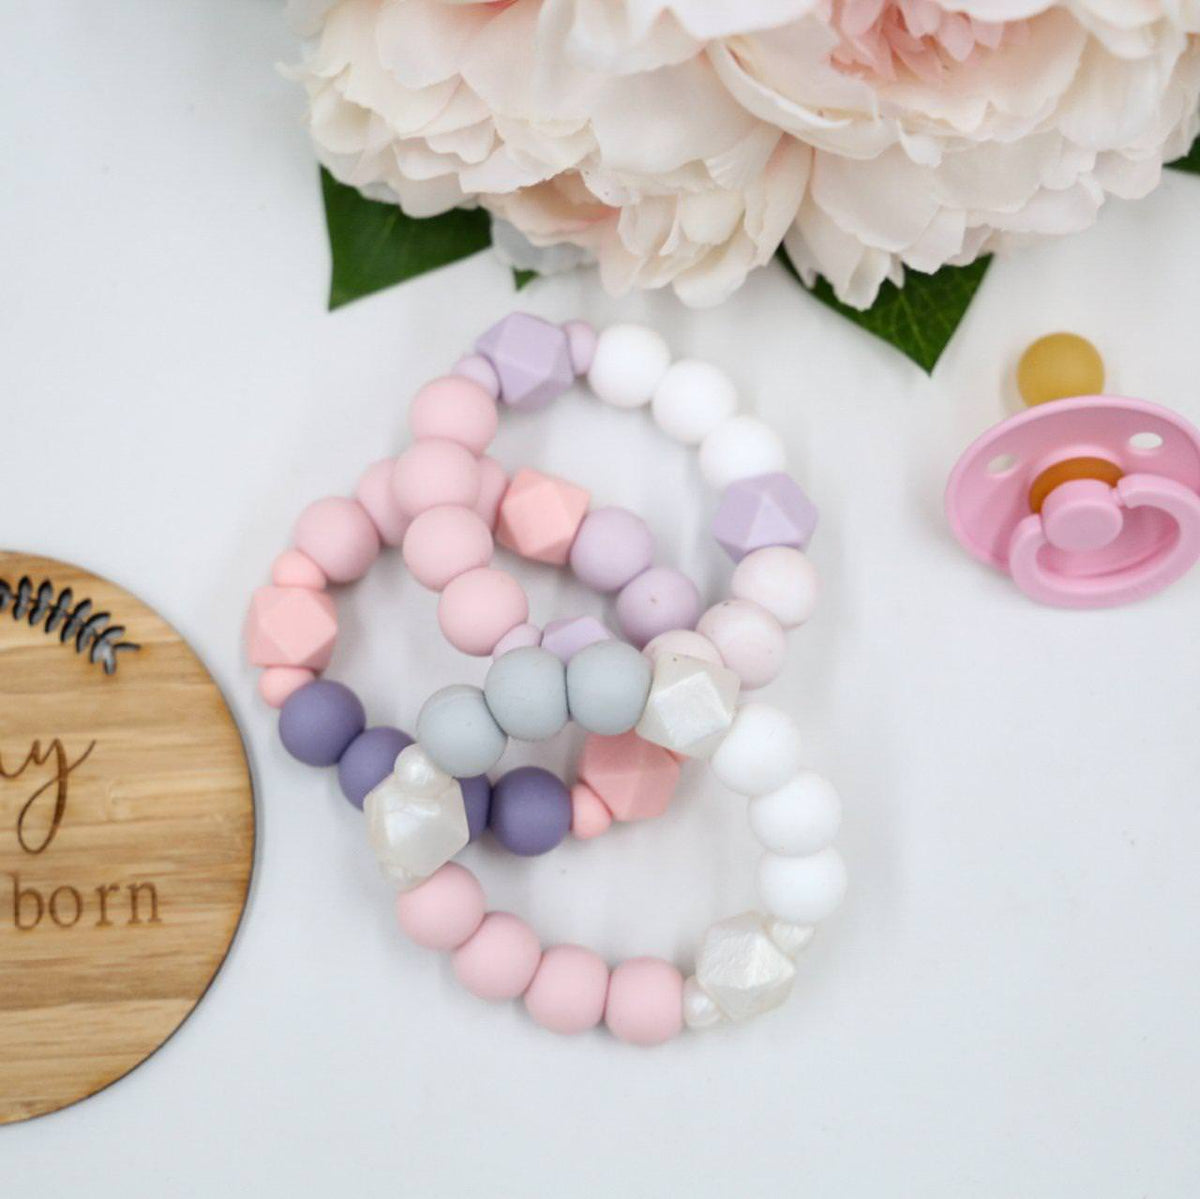 Triple Toned Silicone Teether